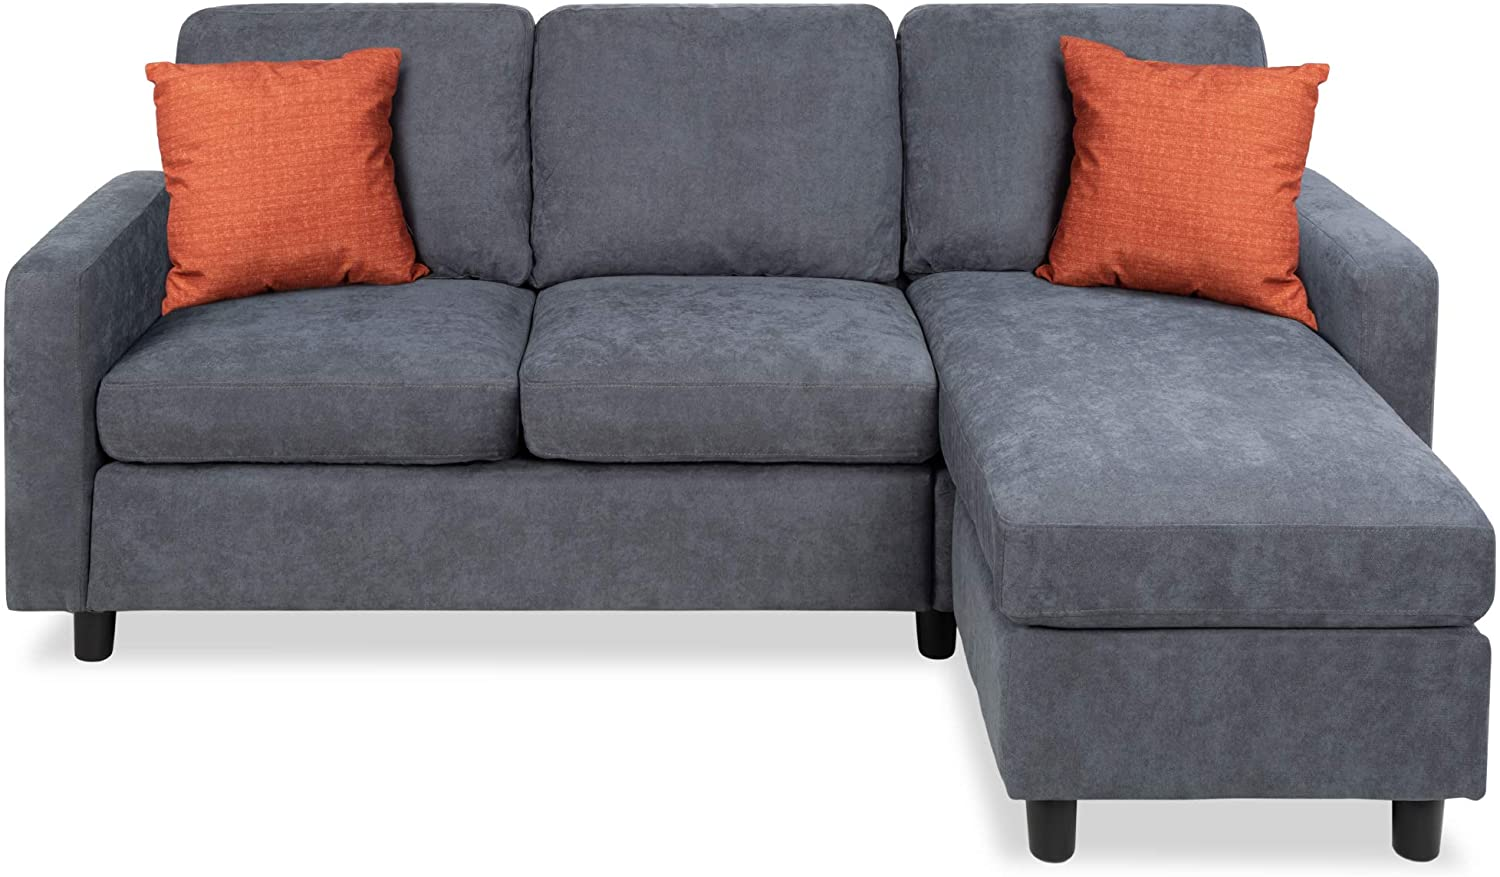 Cheap living room sets Sectional sofa and reversible ottoman